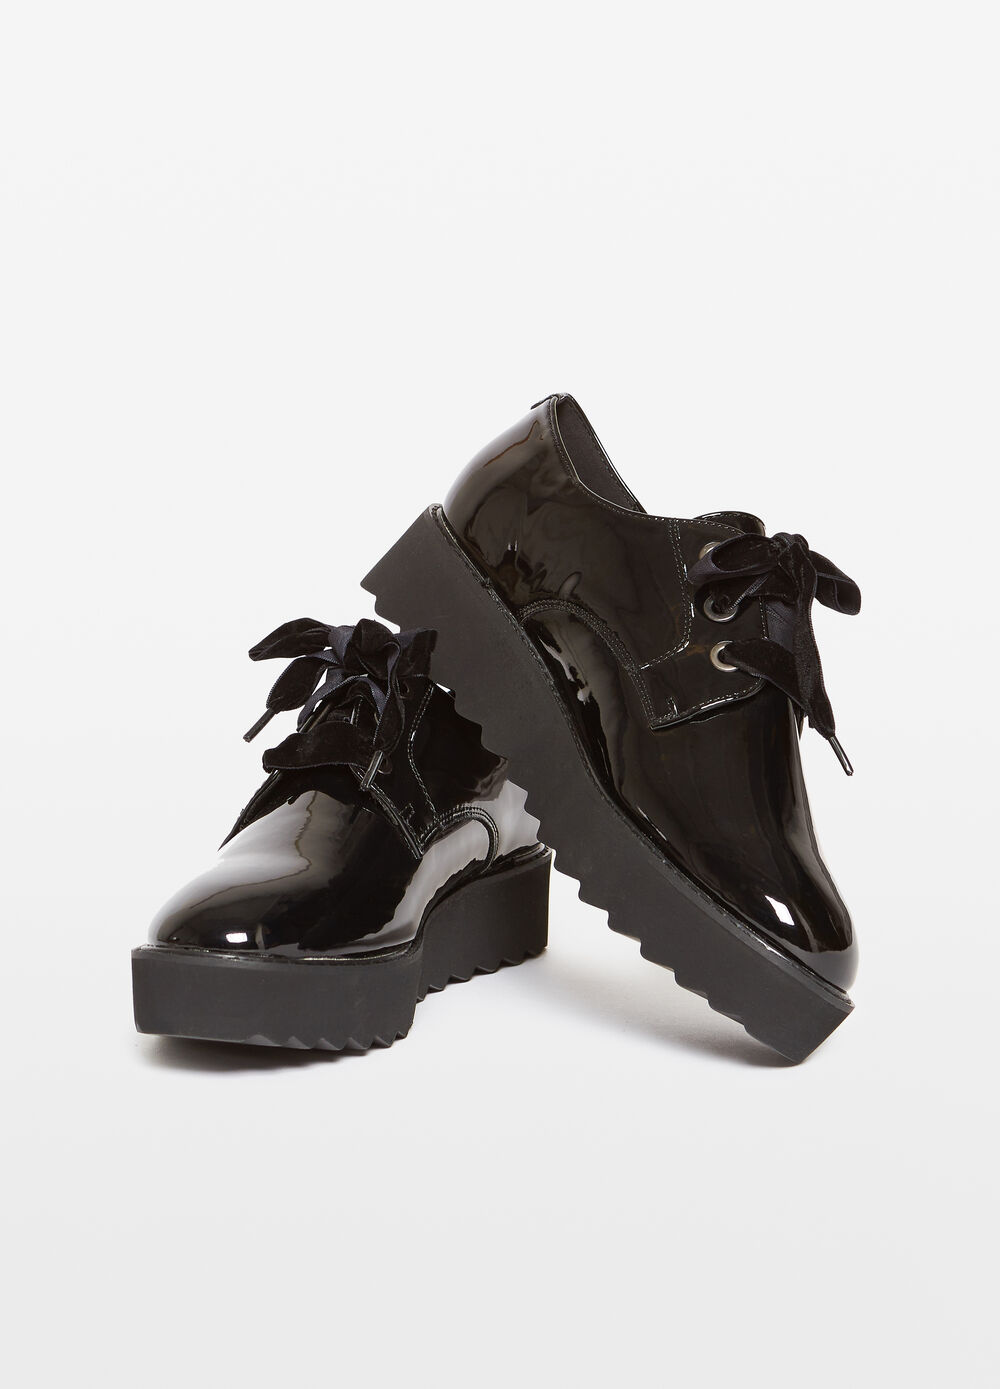 Brogues with laces and thick sole